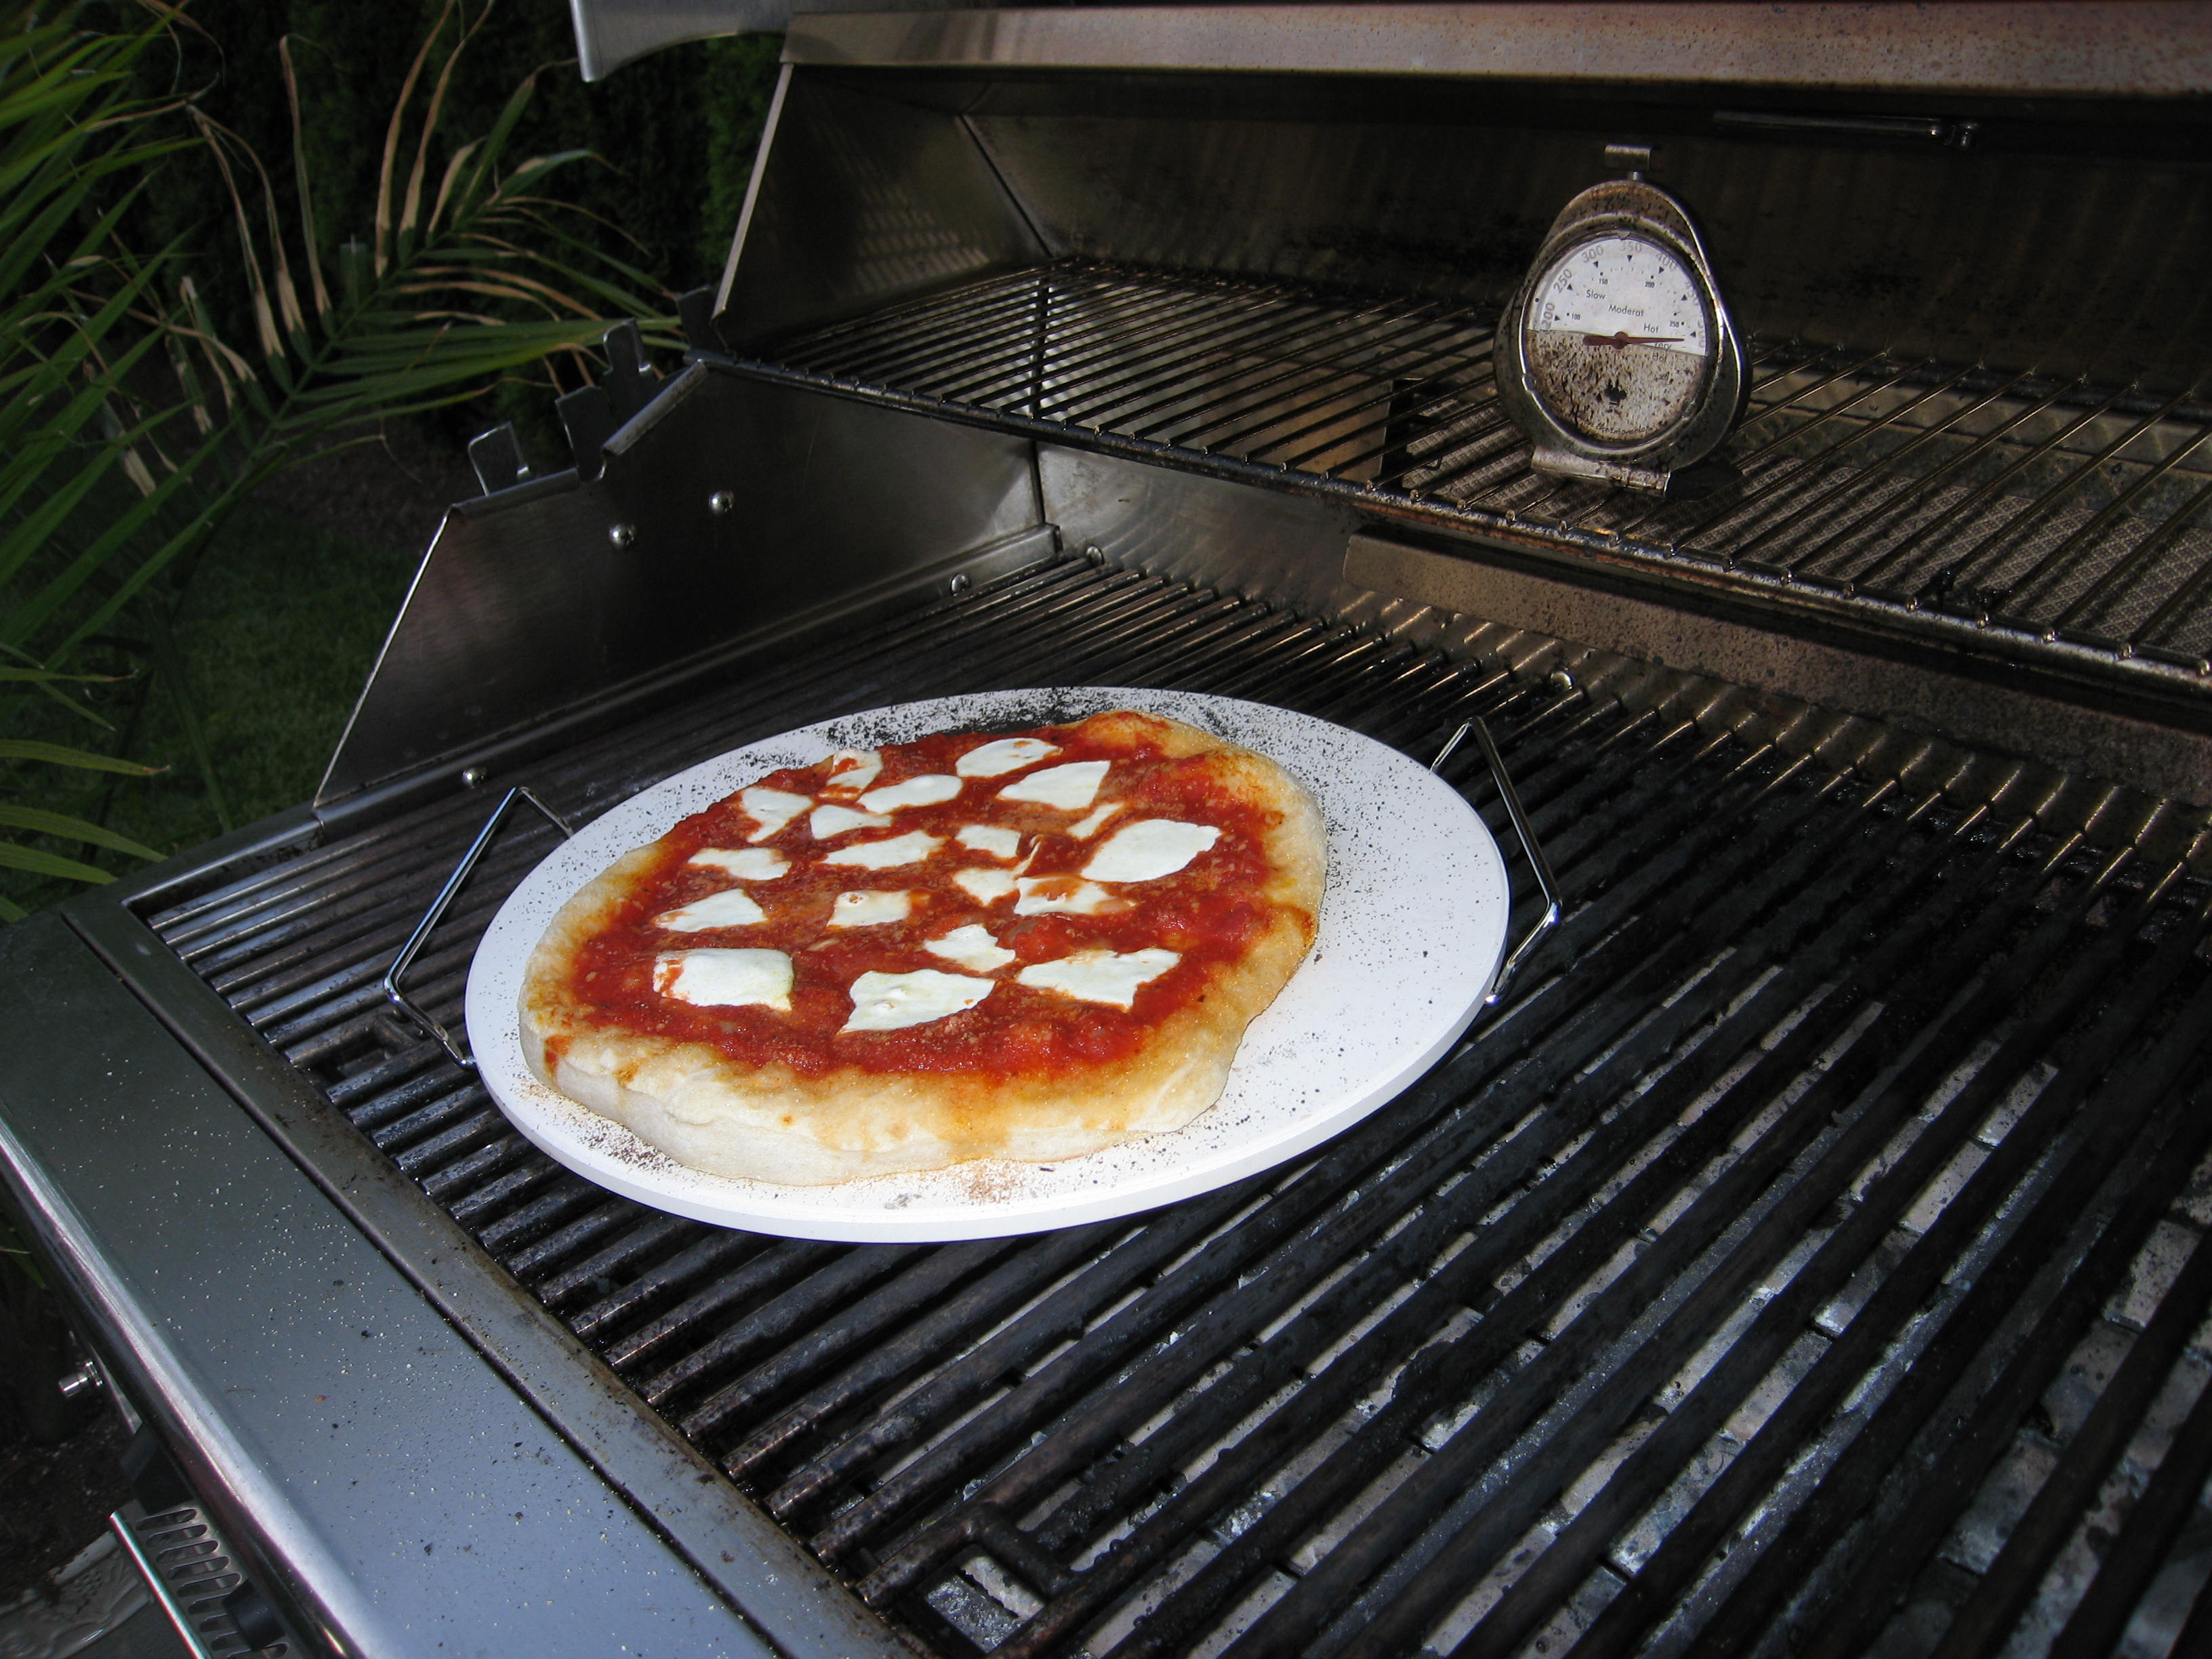 Pizza on the BBQ using a Pizza Stone